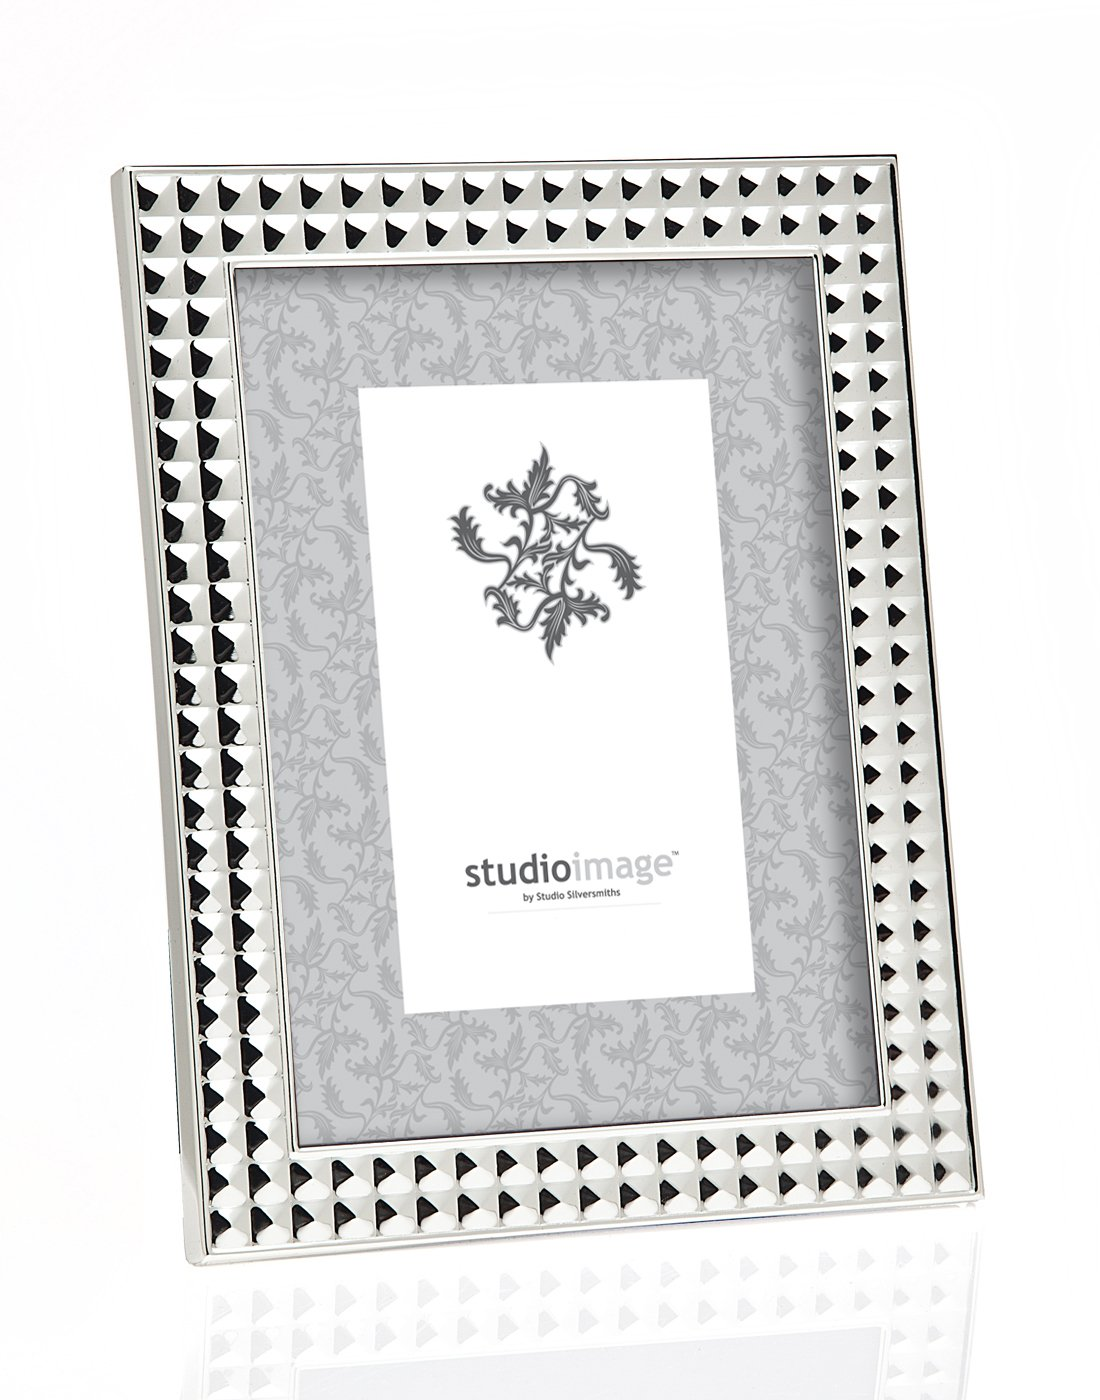 Philip Whitney 4x6 Silver Spike Frame: Amazon.co.uk: Kitchen & Home